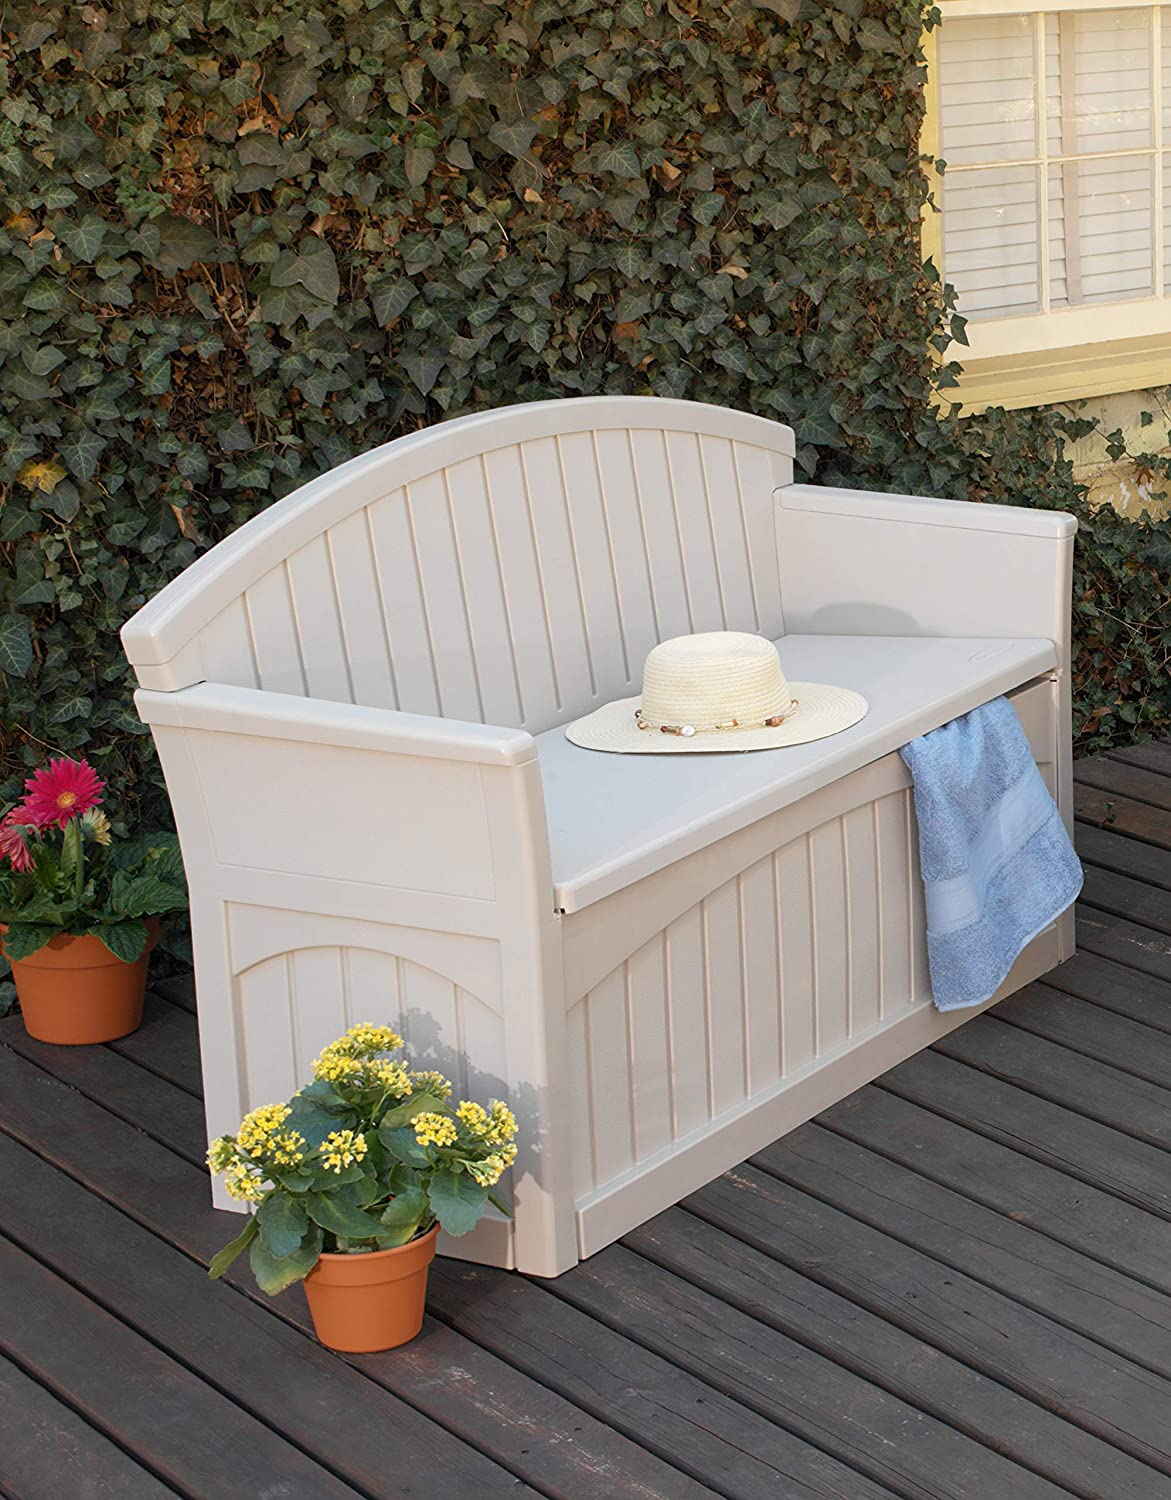 Tools Garden Backyard Patio Ideal for Storing Toys Suncast 50 Gallon Patio Bench with Storage Cushions Taupe Decorative Resin Outdoor Patio Bench for Deck